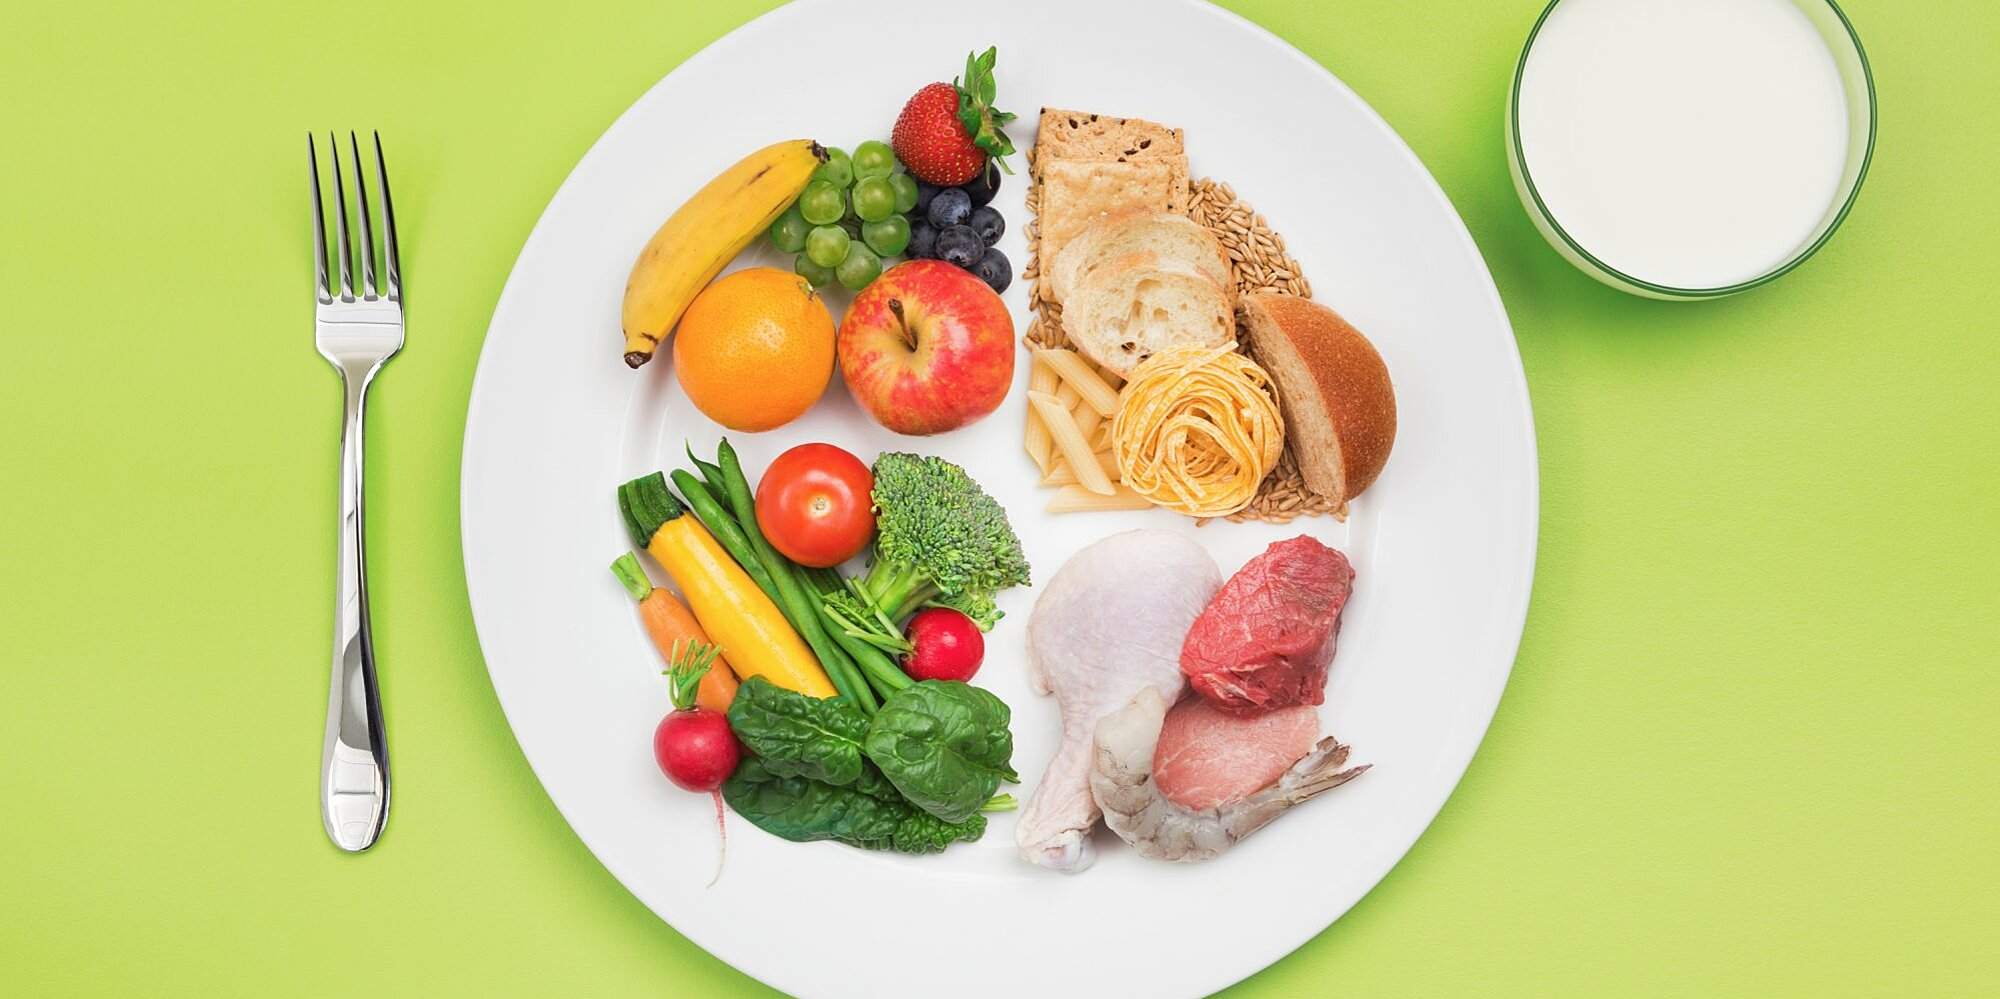 What Does Eating a Balanced Diet Actually Mean? Breaking Down the 'Good' to 'Bad' Diet Ratio